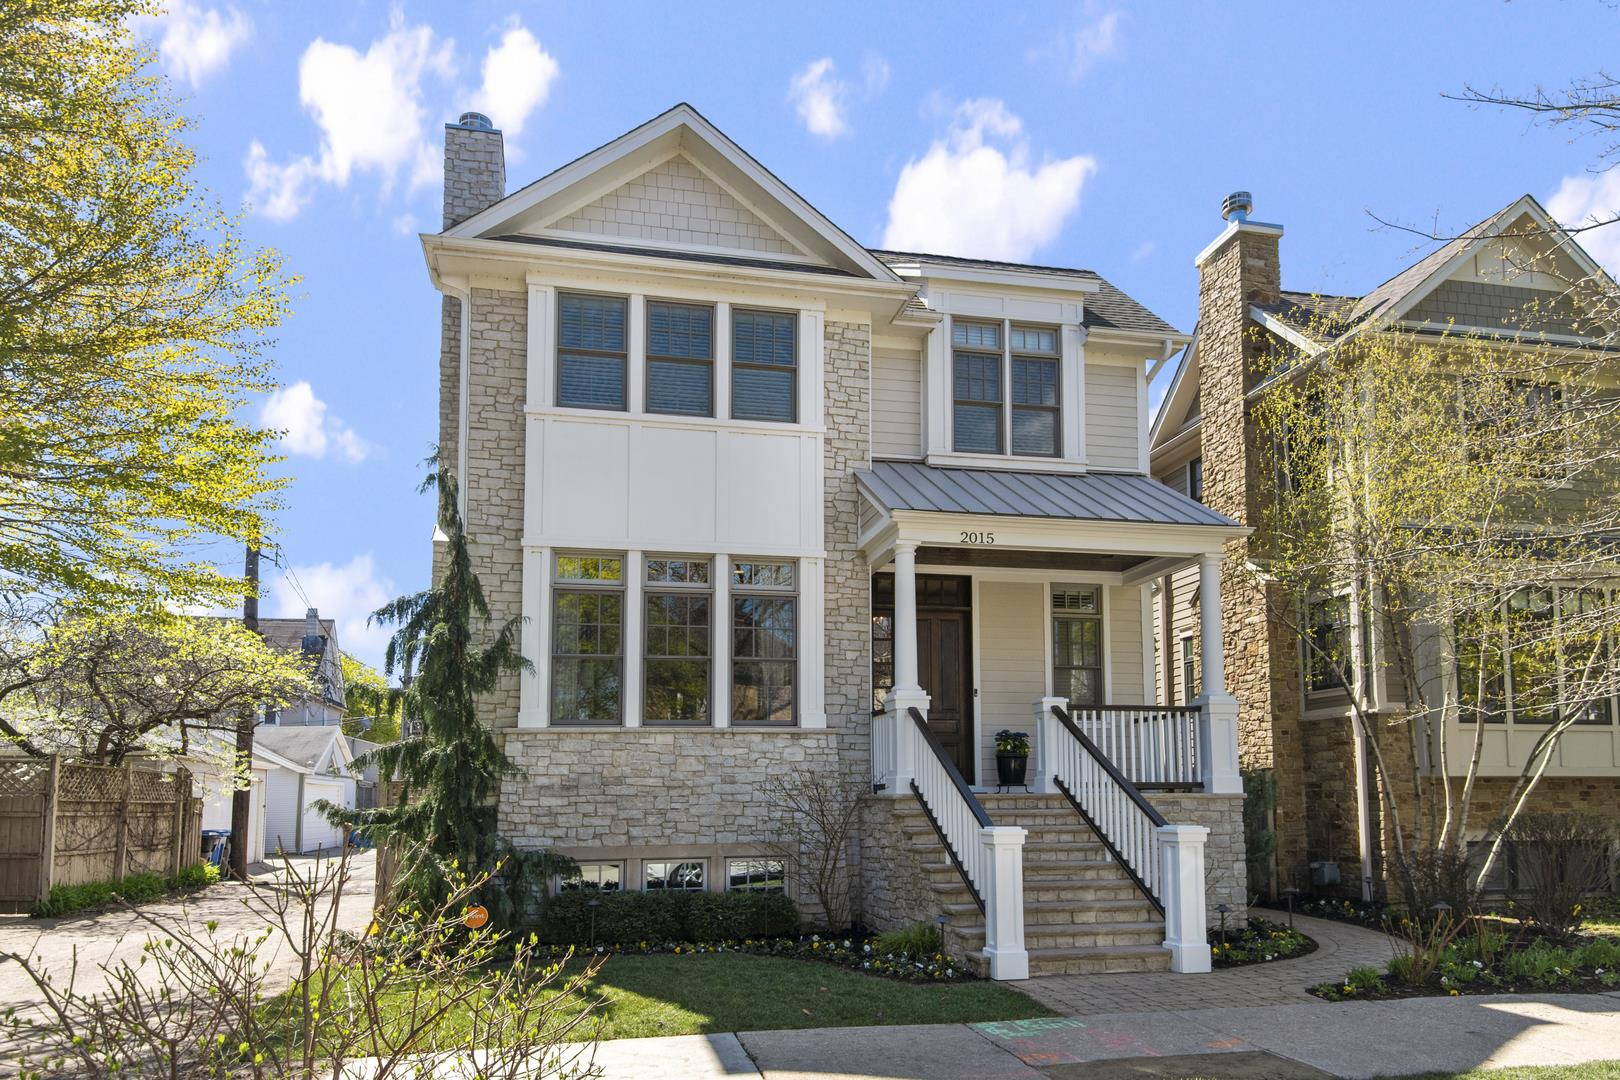 2015 W Giddings Street, Chicago, IL 60625 - #: 11054175